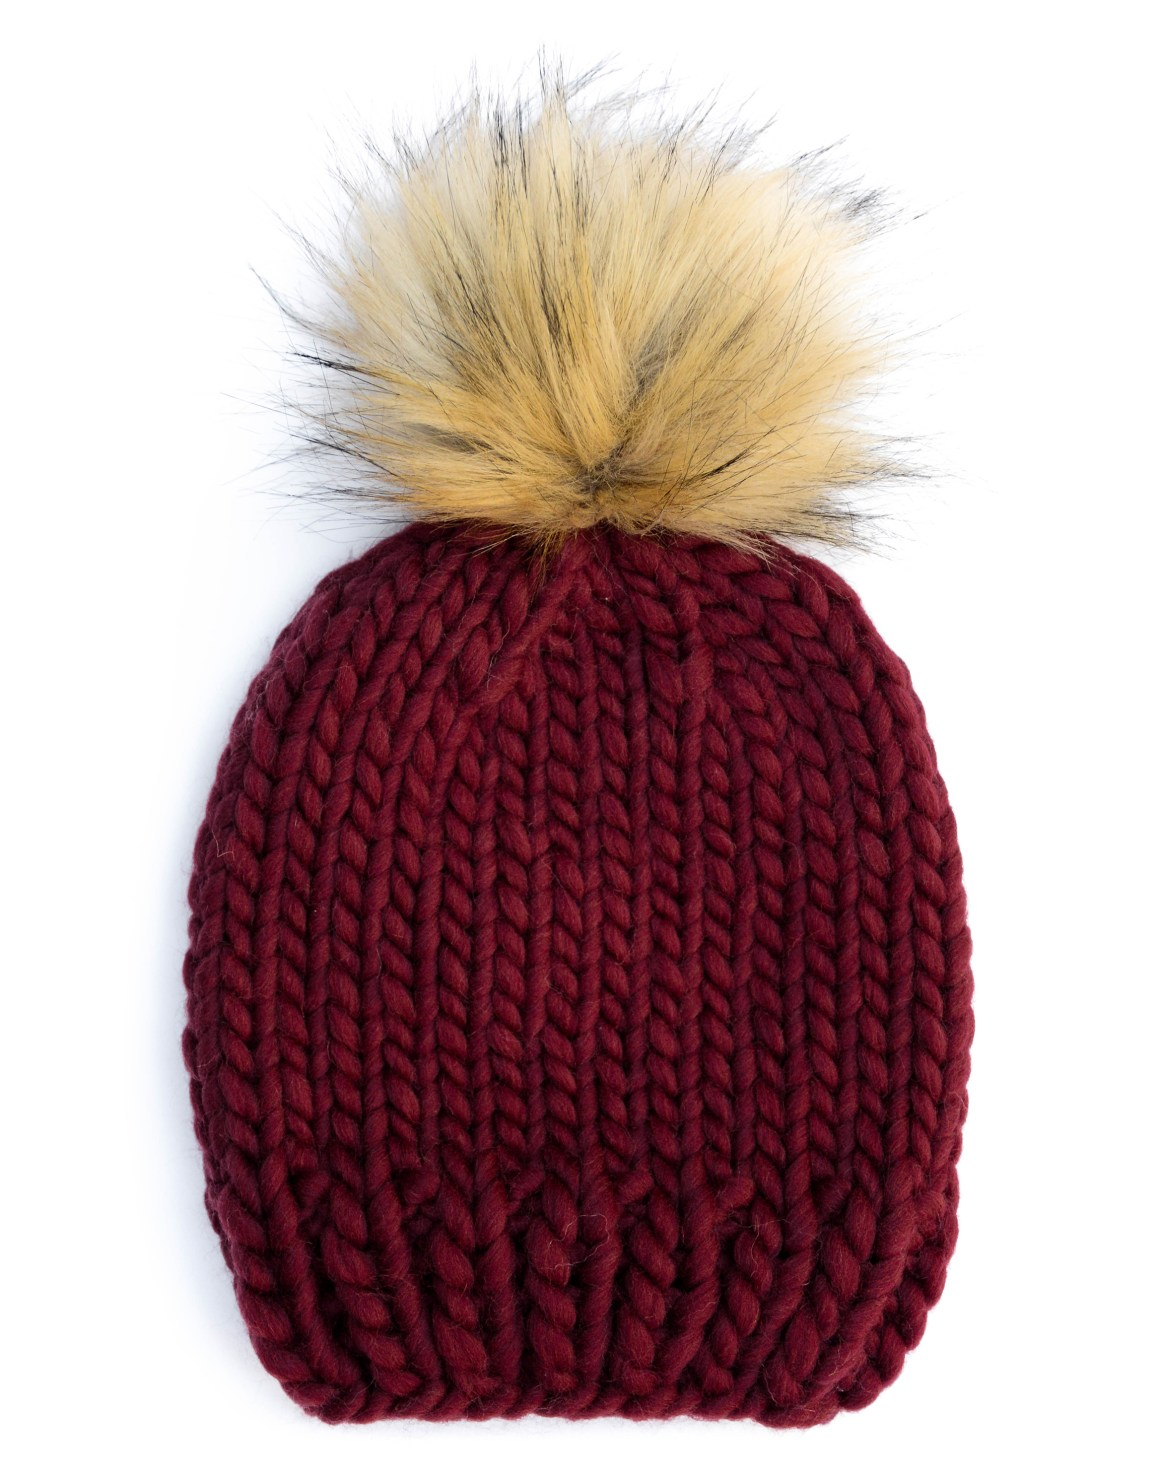 off_the_wool_handmade_knitted_bobble_hat_furry_fur_pompom_maroon